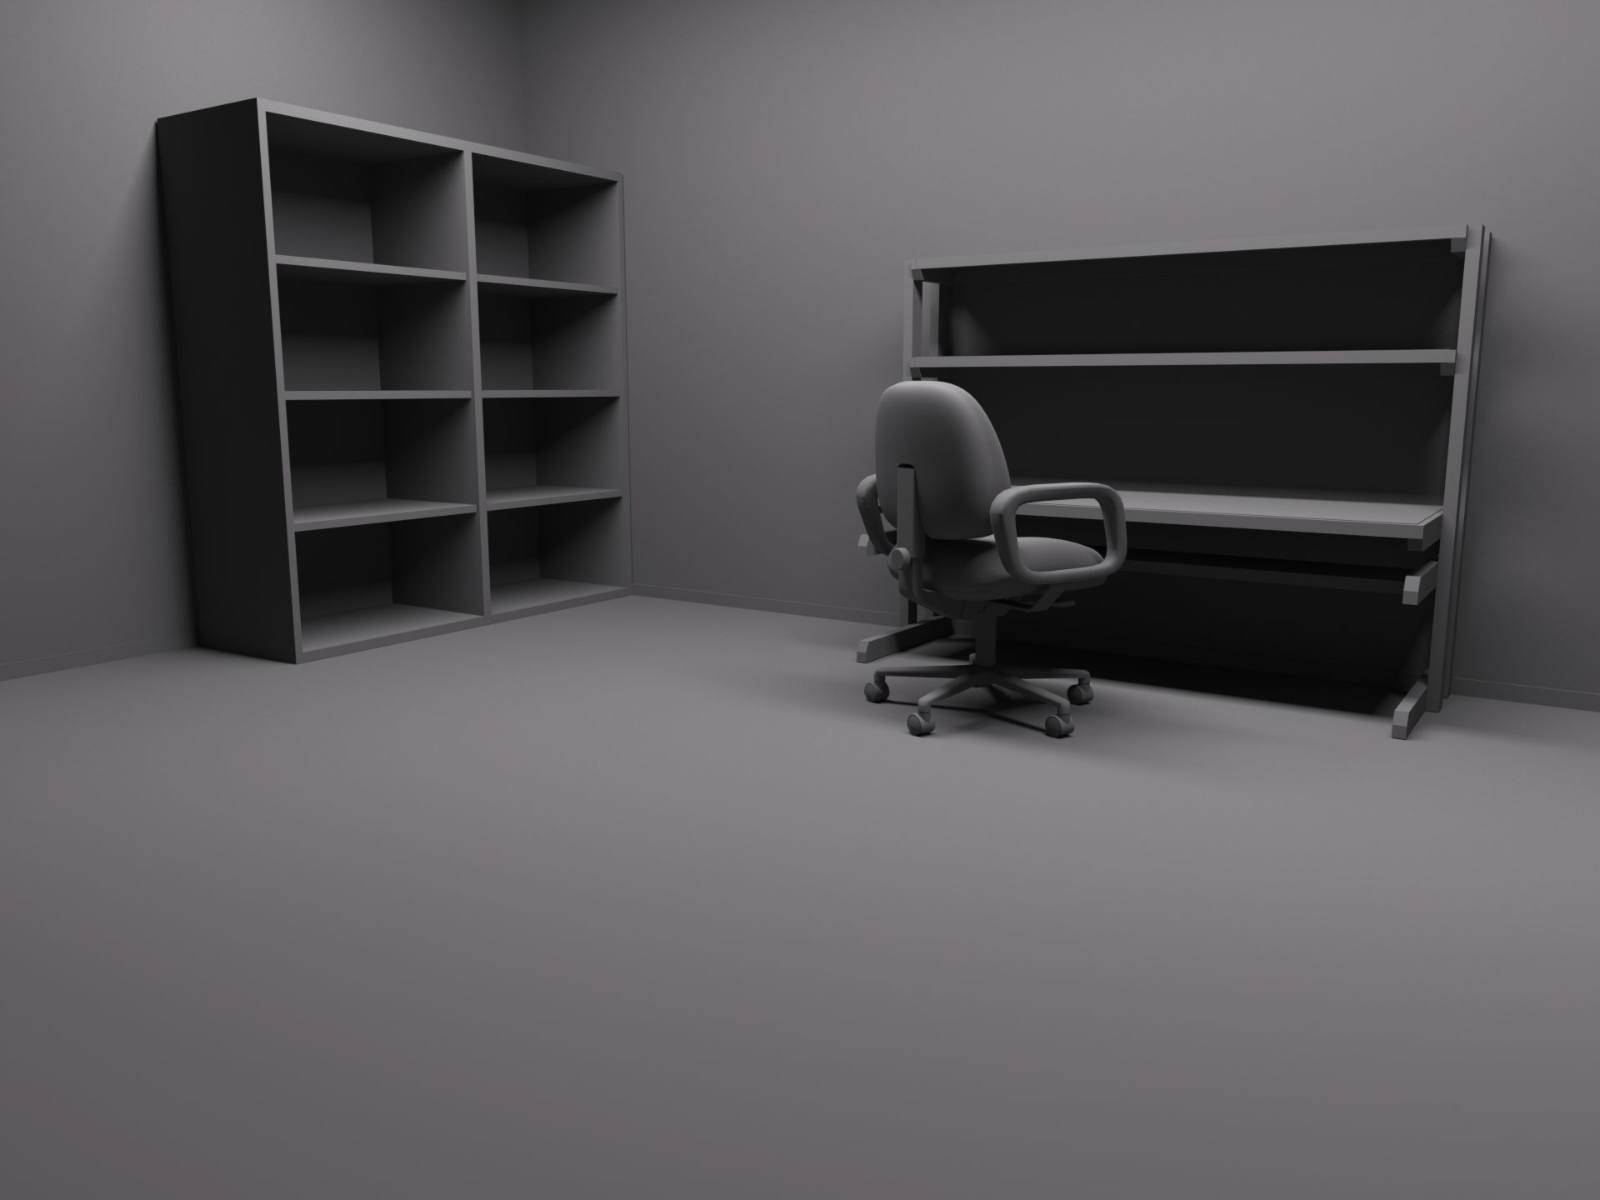 The office desktop wallpaper wallpapersafari for 3d office planner